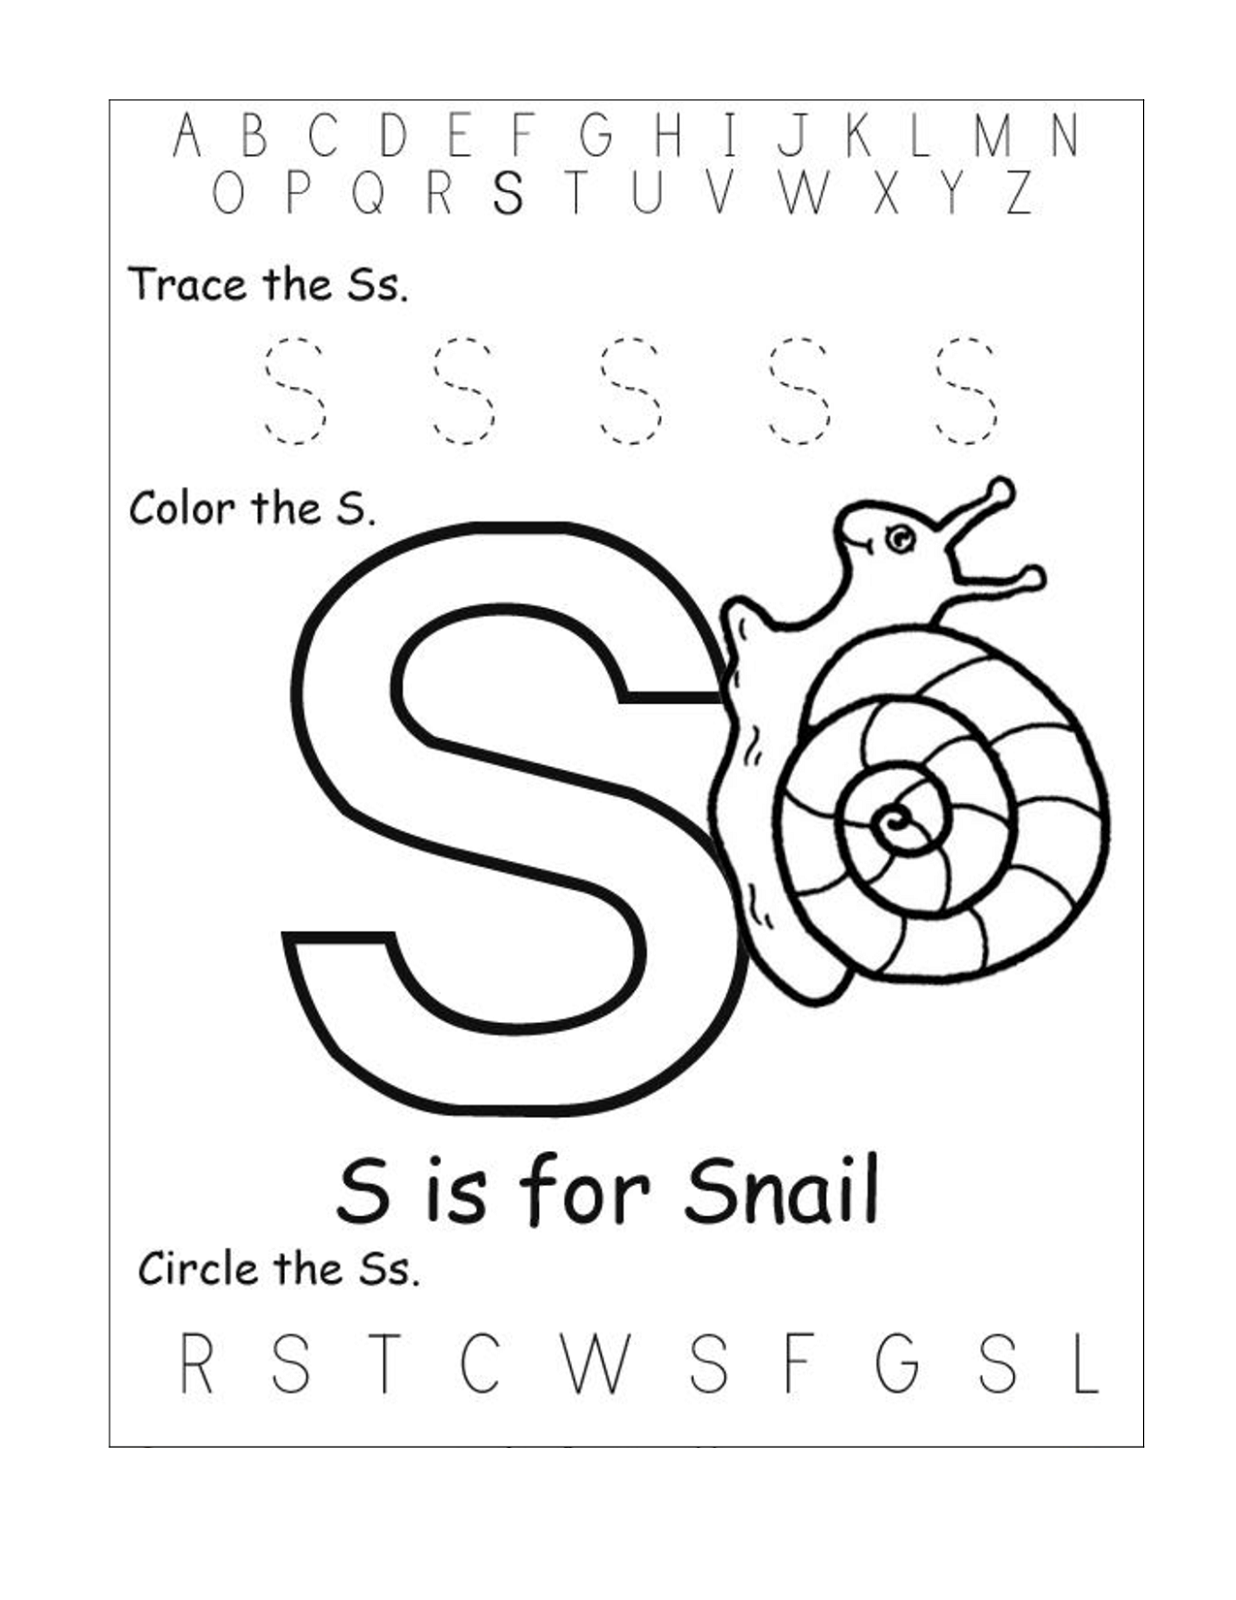 Worksheet Free Abc Worksheets For Pre-k free abc worksheets for pre k activity shelter snail